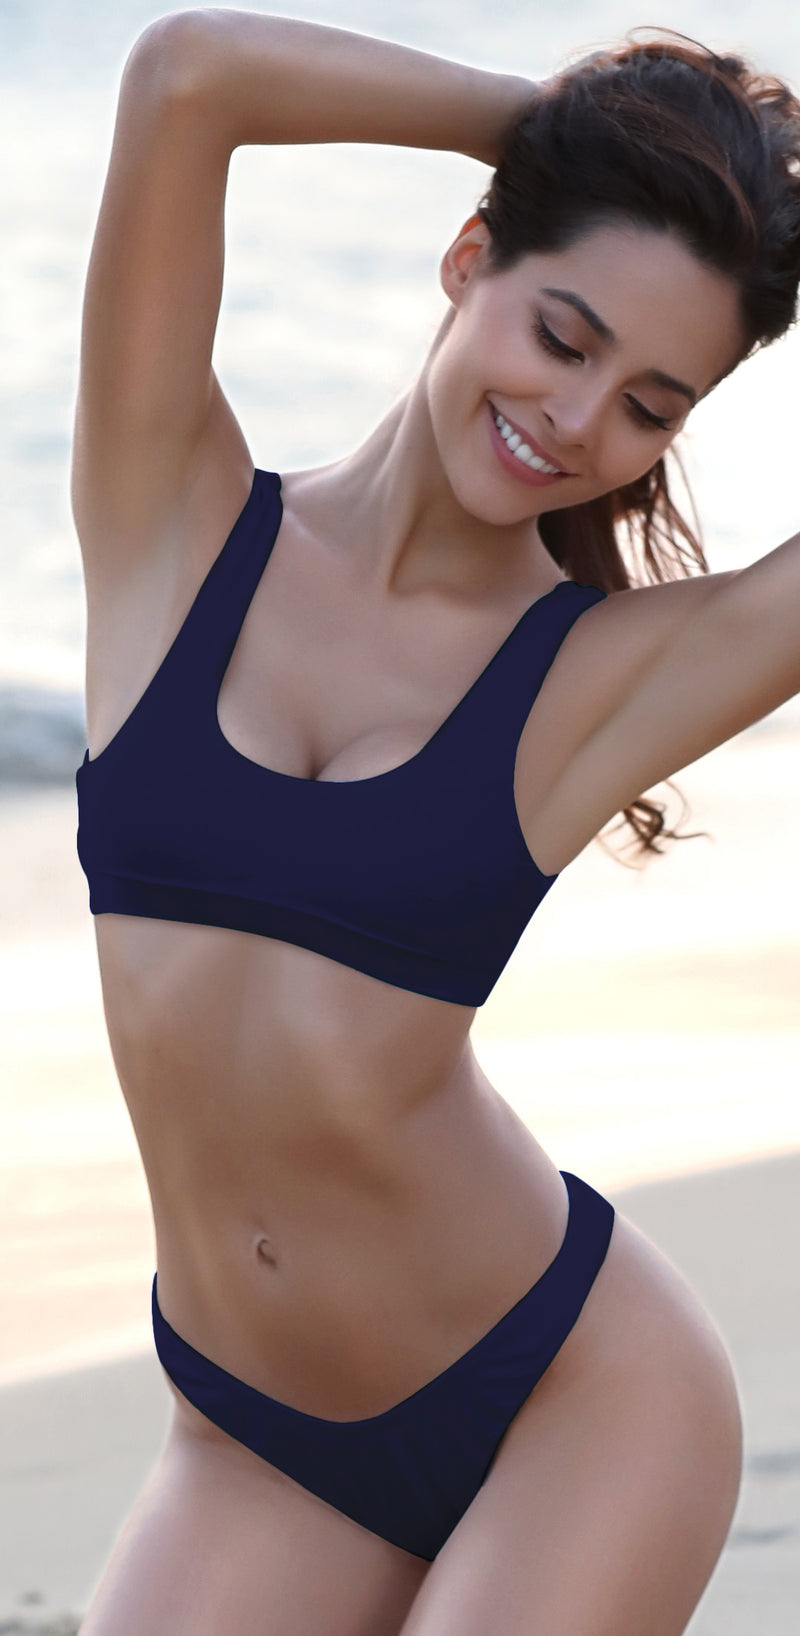 Scoop Neck Sport Non-Padded Bikini - Shekini Swimwear